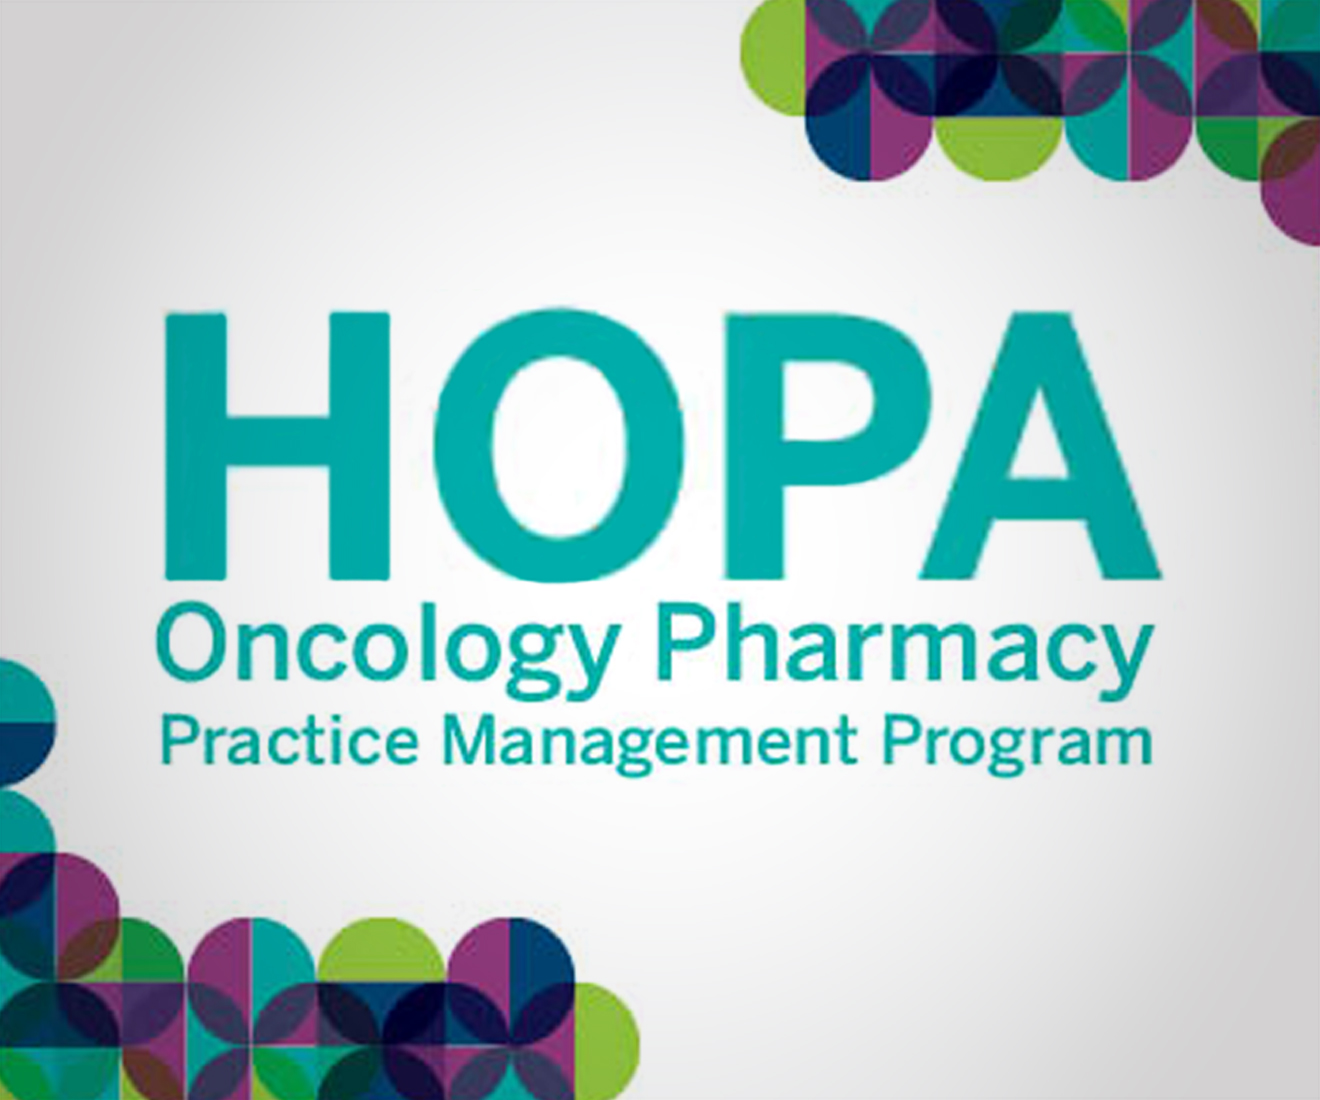 HOPA Oncology Practice Management Program logo